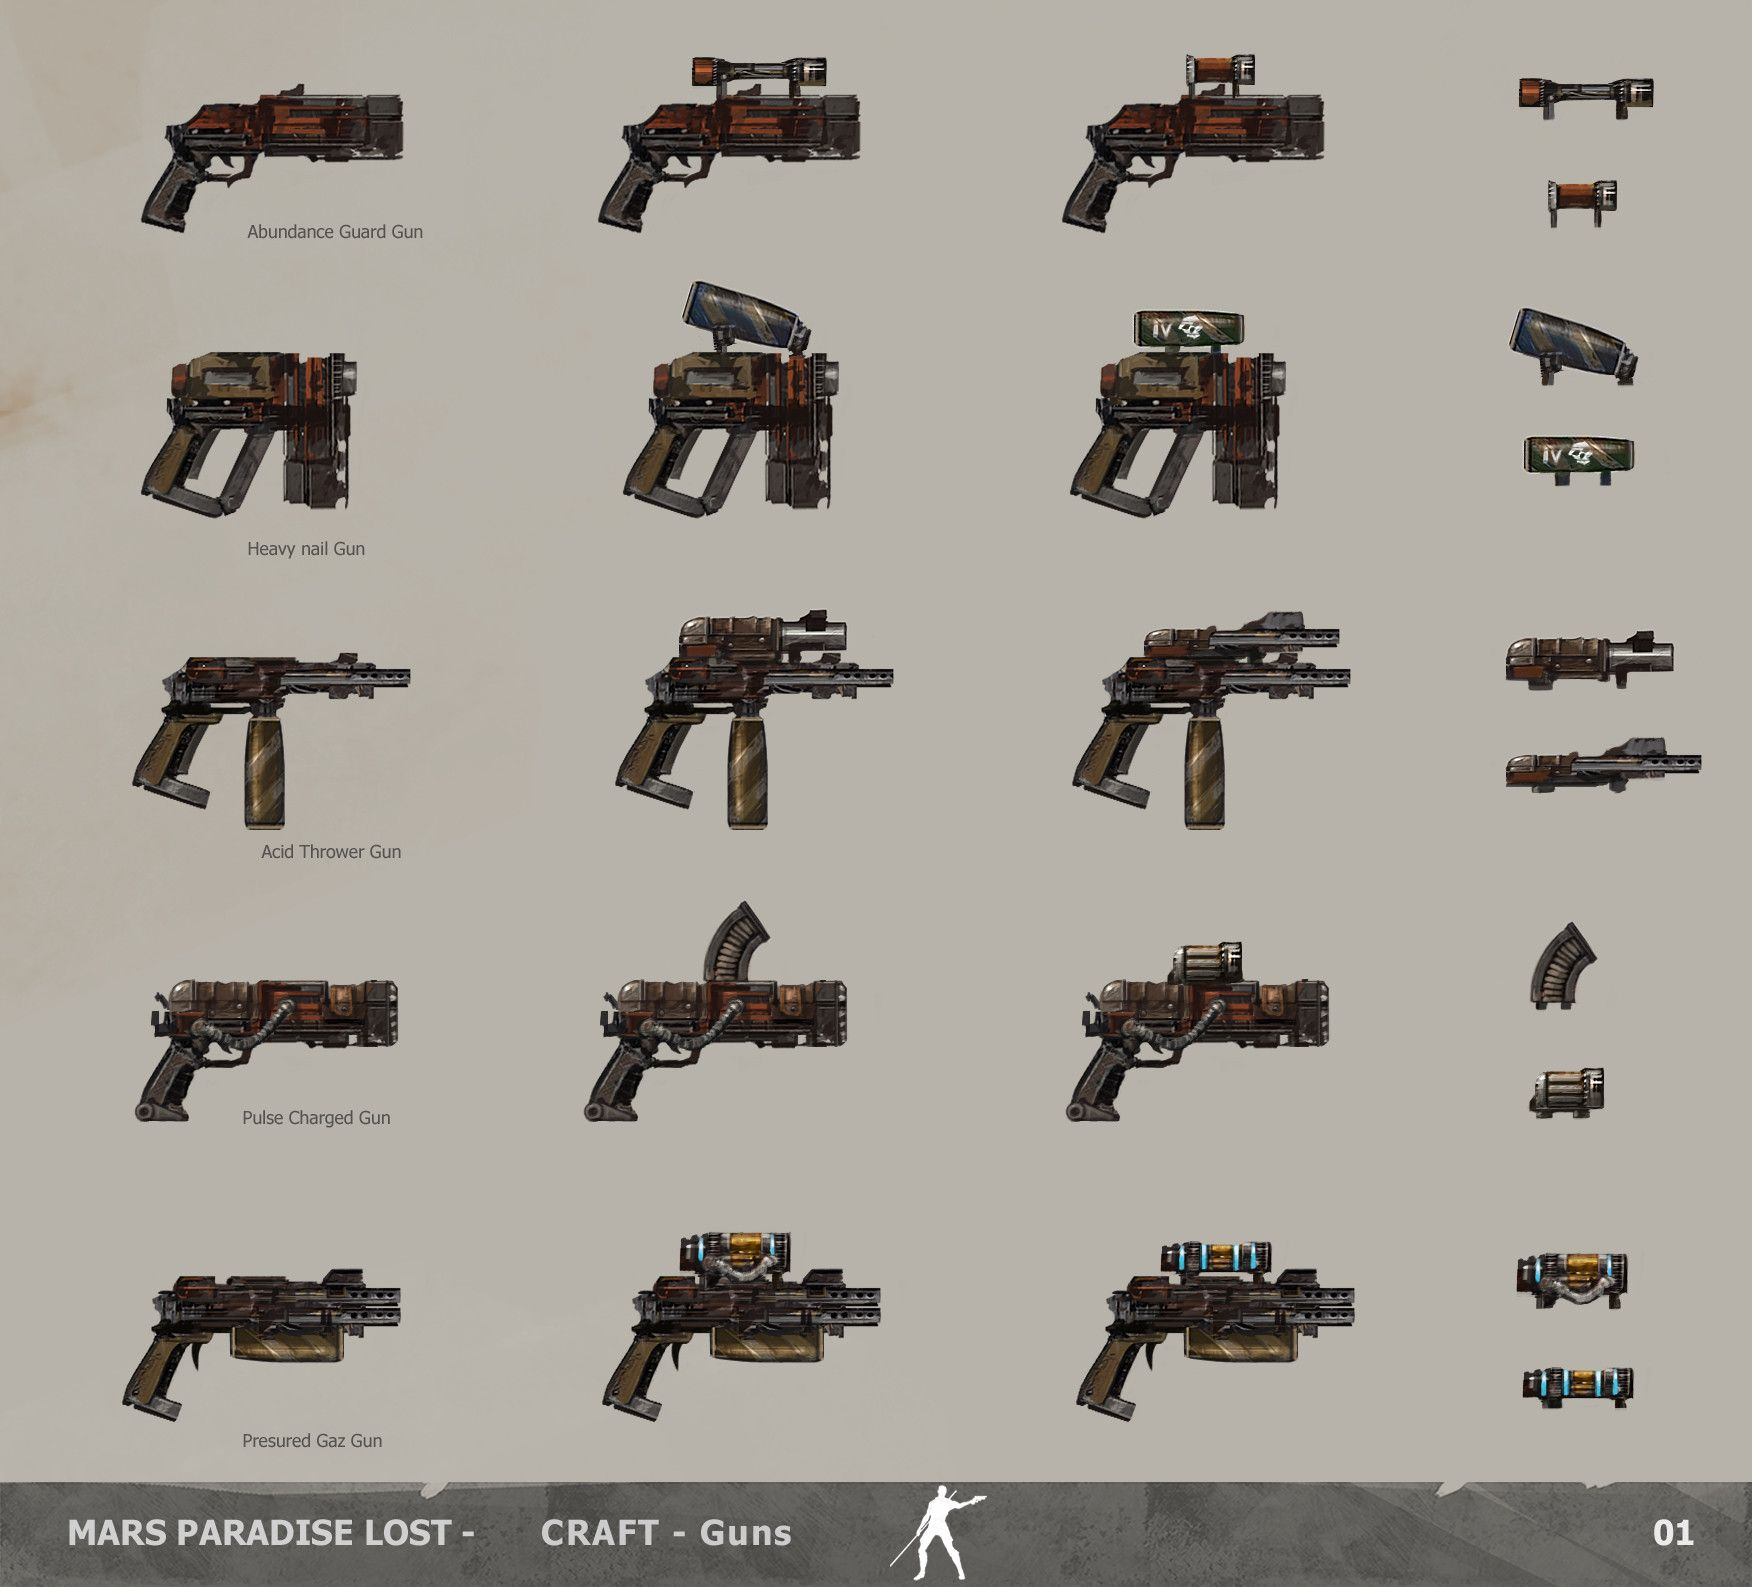 ArtStation - The Technomancer - Weapons Designs, Alexandre Chaudret on funny weapons designs, improvised weapons designs, indian weapons designs, homemade weapons furniture, homemade weapons systems, anime weapons designs,